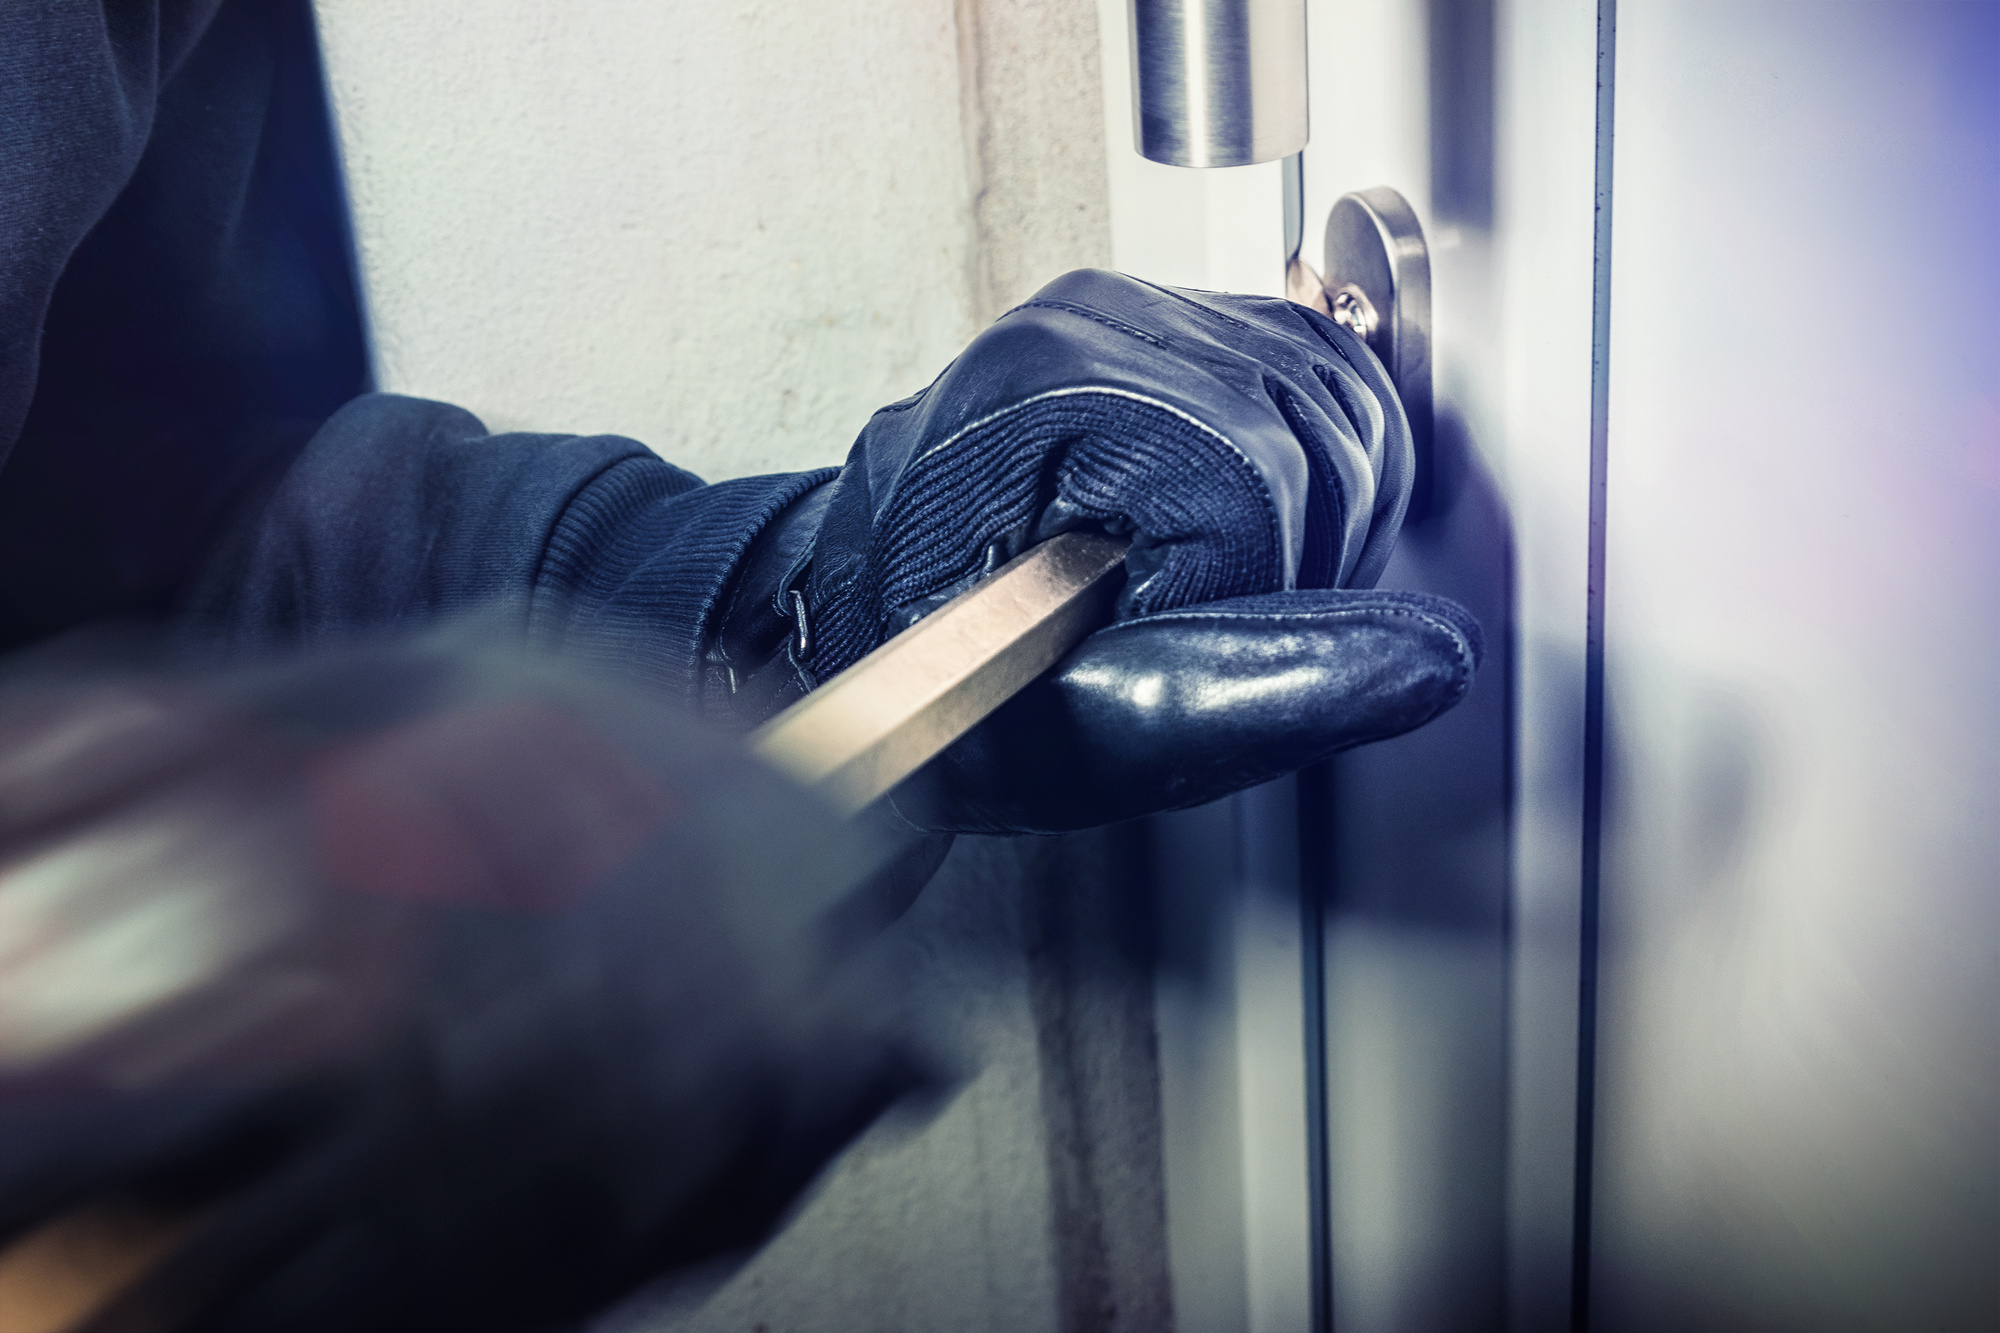 The Weak Points In Your Home and How to Protect Them From Burglary